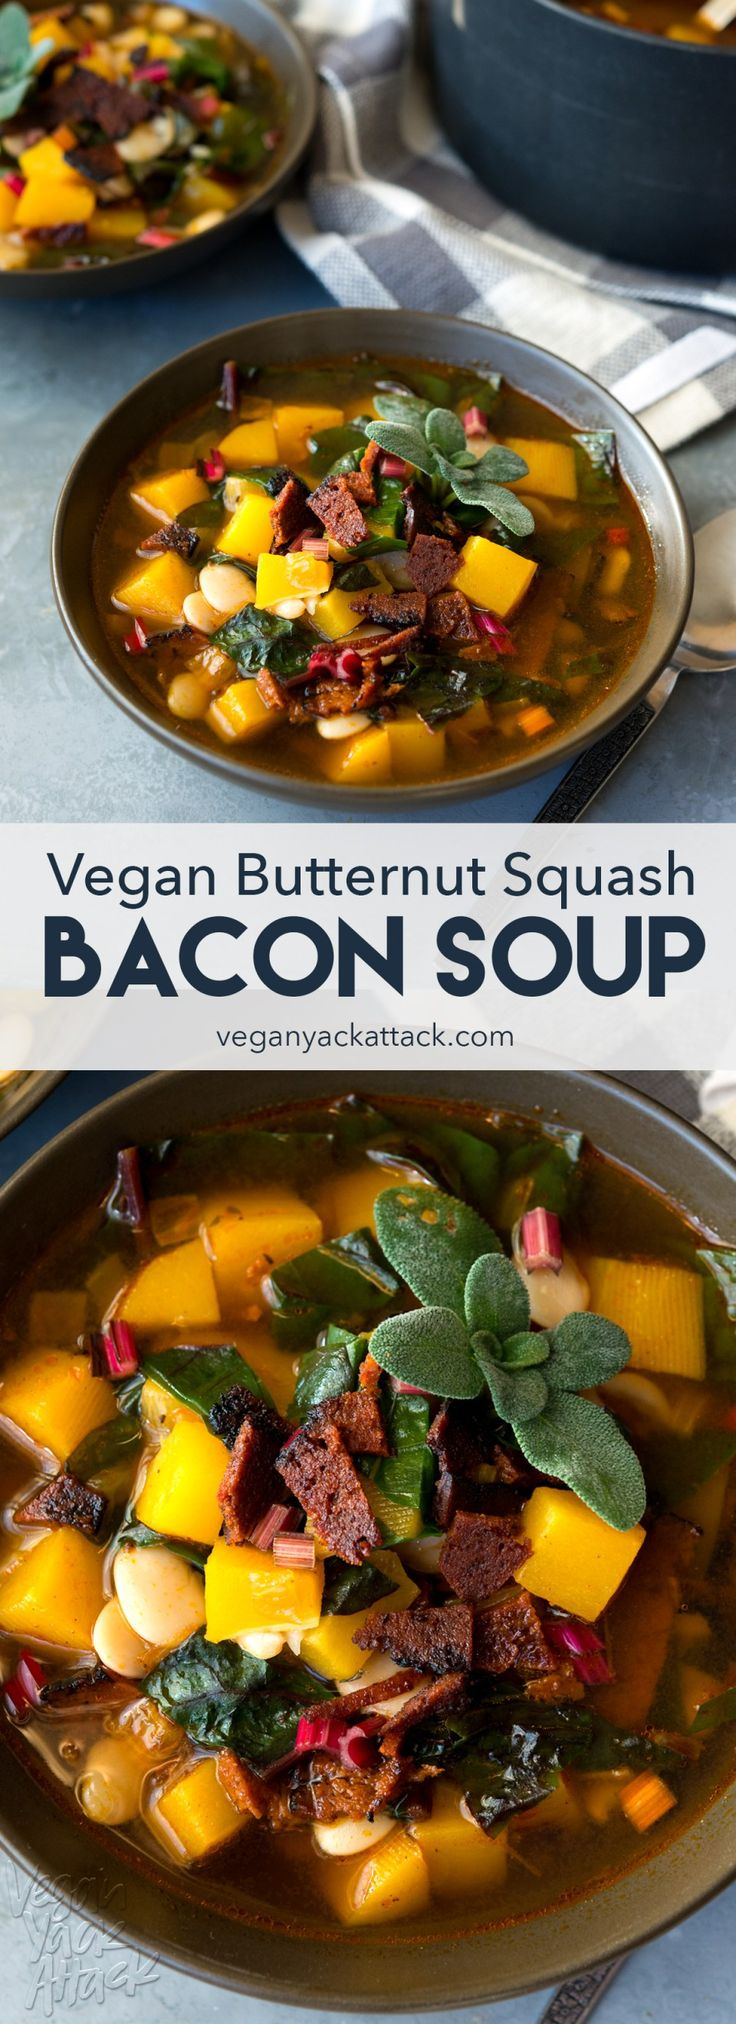 Butternut Squash Bacon Soup - Warm, comforting, smoky and VEGAN, made with 10 ingredients! #vegan #vegetarian #spon #SweetEarth